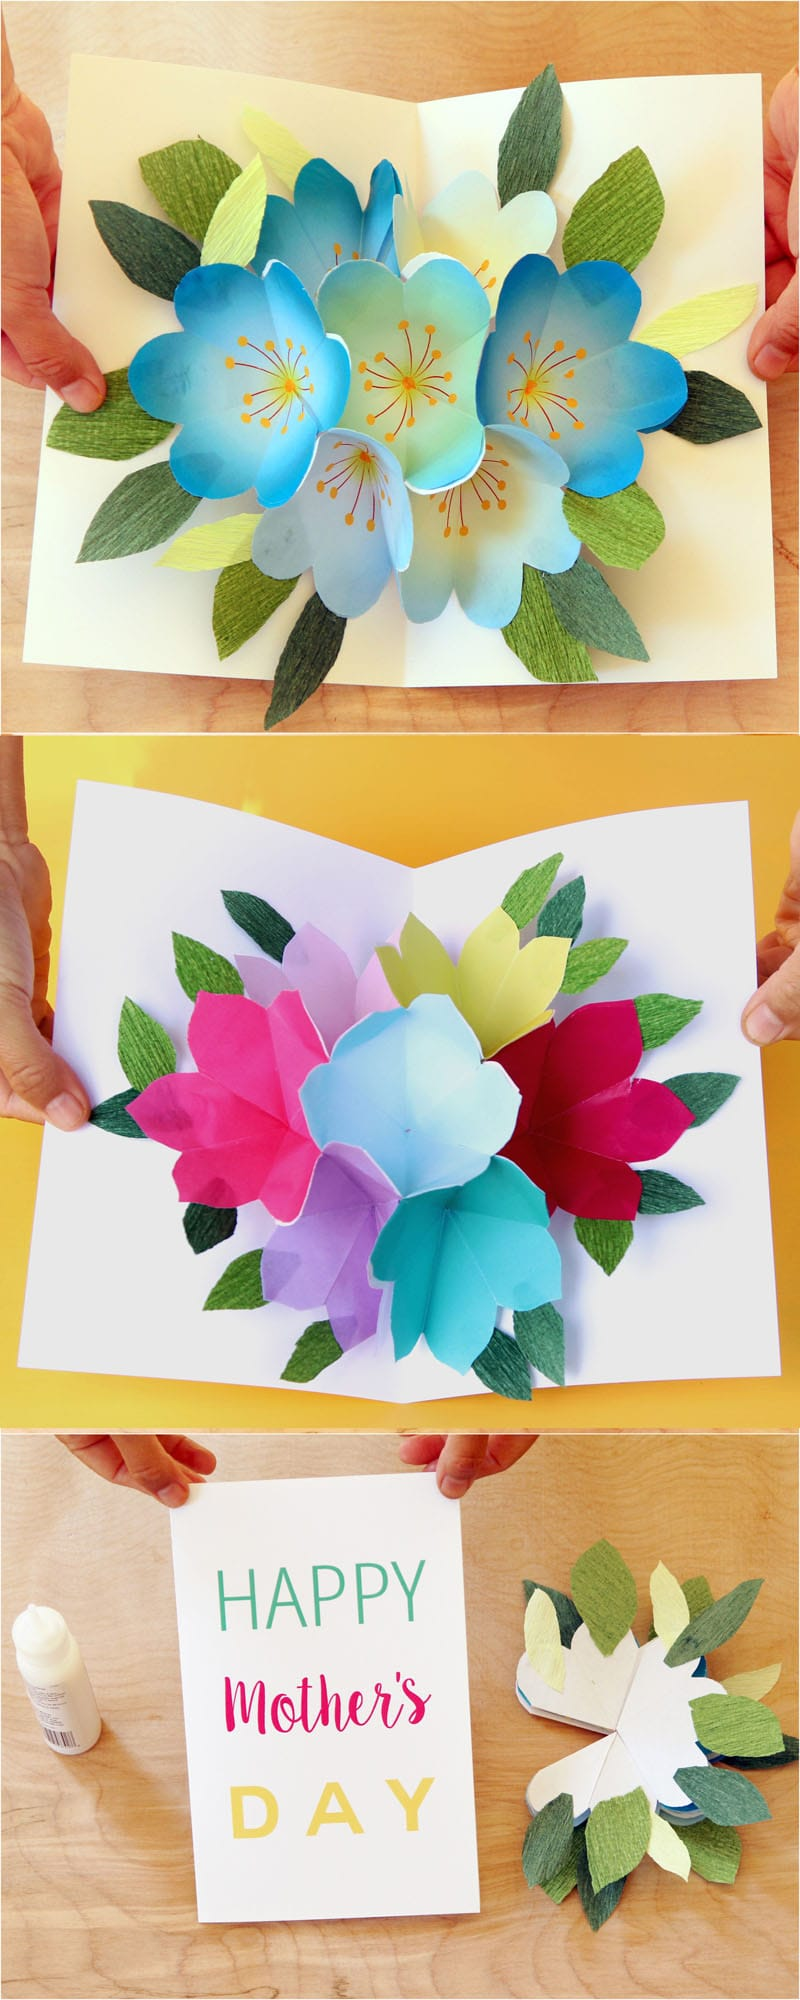 Pop Up Flowers DIY Printable Mothers Day Card A Piece Of Rainbow - Free mother's day card templates